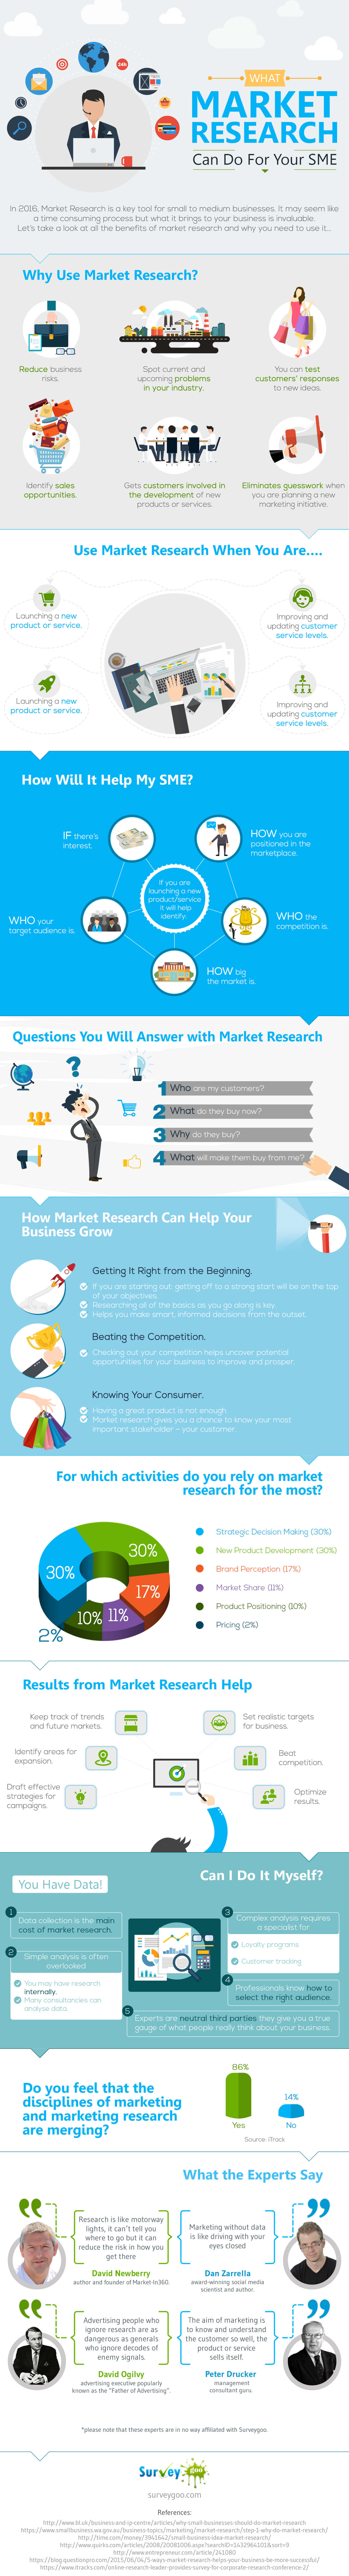 What-Market-Research-Can-Do-For-Your-SME-infographic